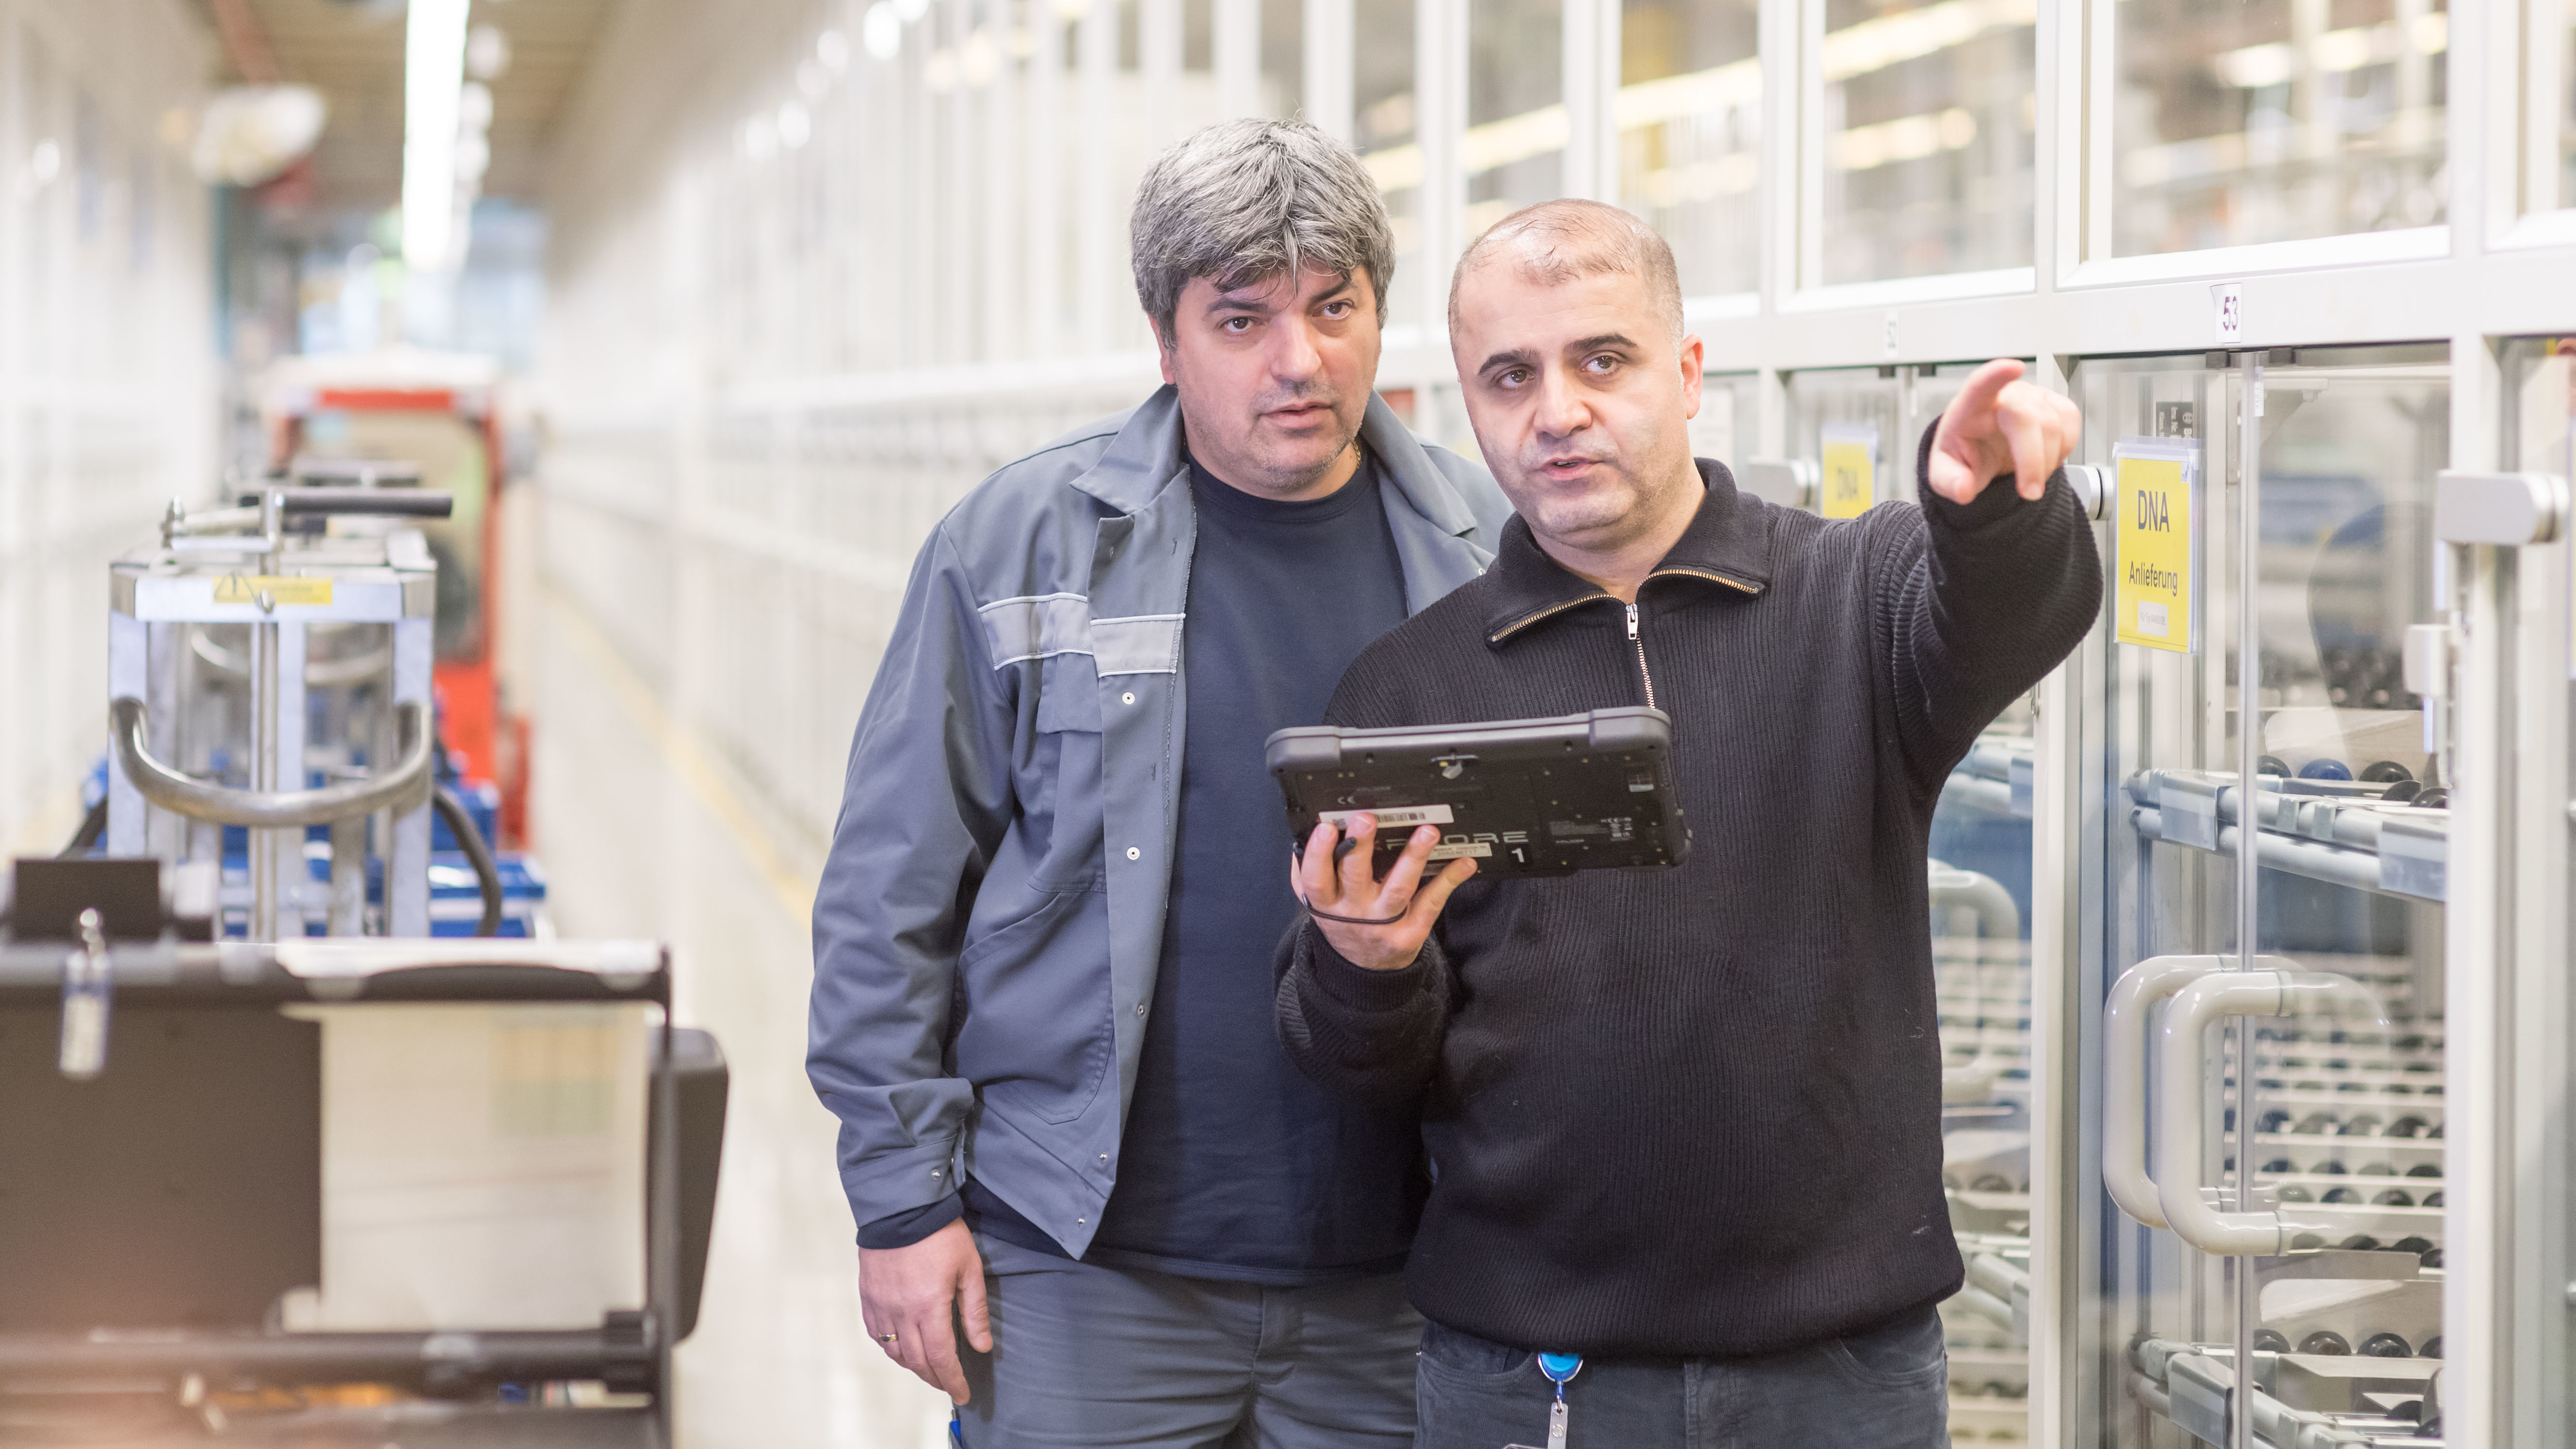 Training Industry 4.0 specialists